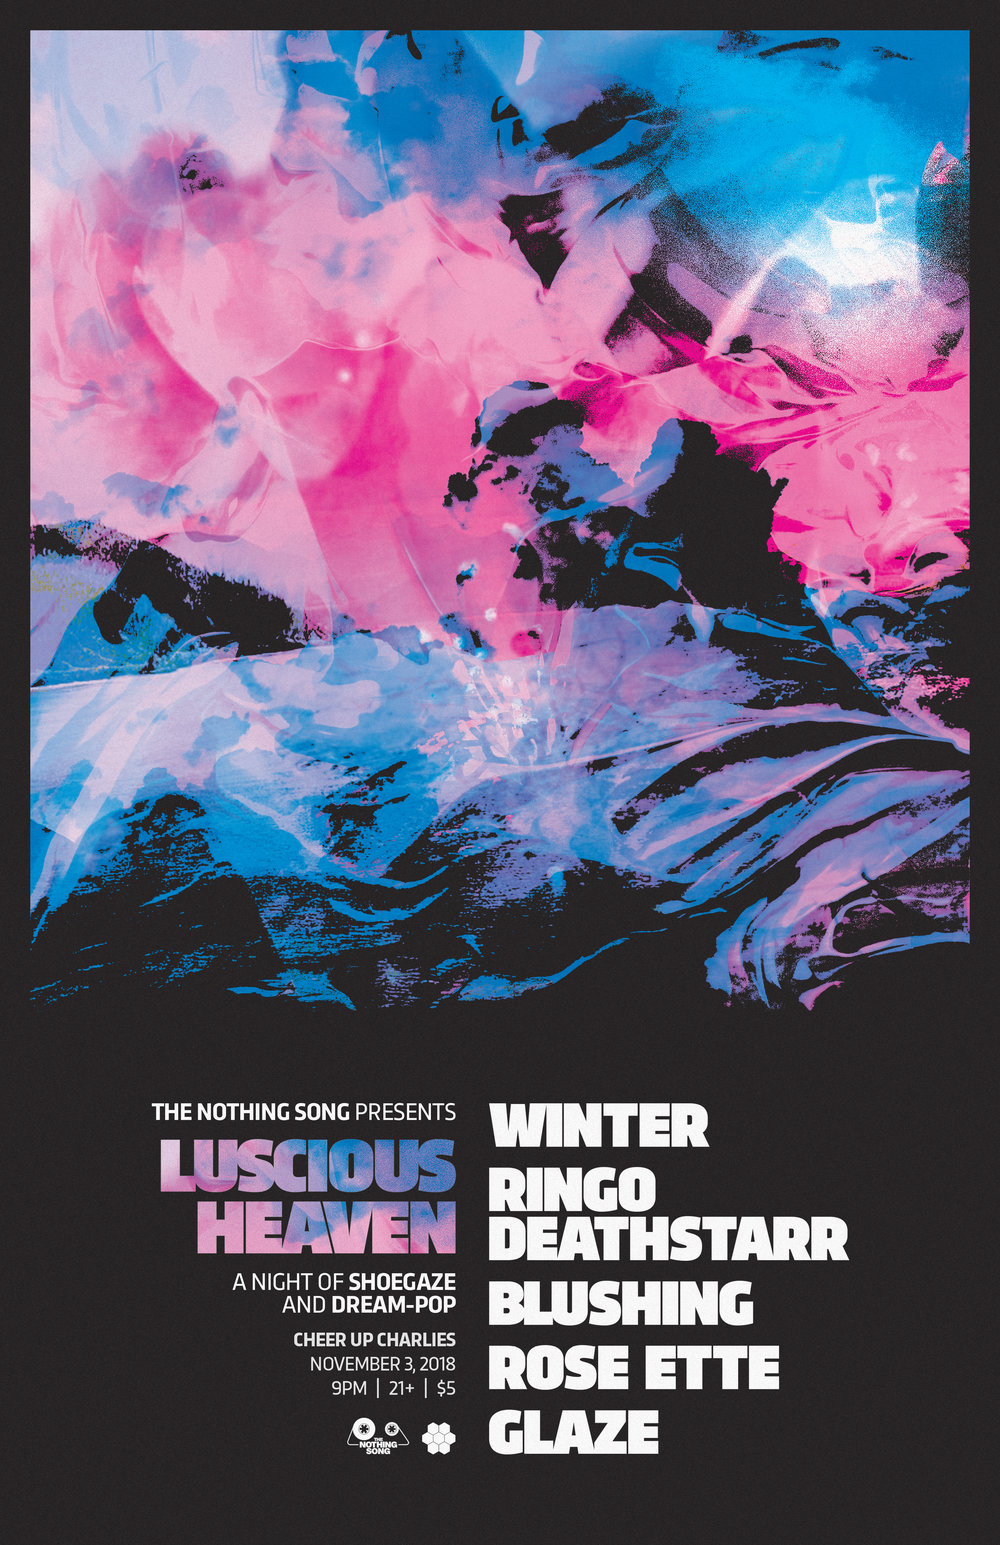 11.03.18 Luscious Heaven: A Night of Shoegaze & Dream Pop - Saturday, November 3rd marks the fourth annual Luscious Heaven: A Night of Shoegaze & Dream Pop at Cheer Up Charlies! Special guest Winter from Los Angeles will be joining us along with dreamy sets from Ringo Deathstarr, Blushing, Rose Ette from Houston and Glaze on both inside & outside stages. ♥ Plus a Special Announcement Coming Soon!https://www.facebook.com/events/320231215404212/9PM / $5 Cover Presented by The Nothing SongPoster by Cosech